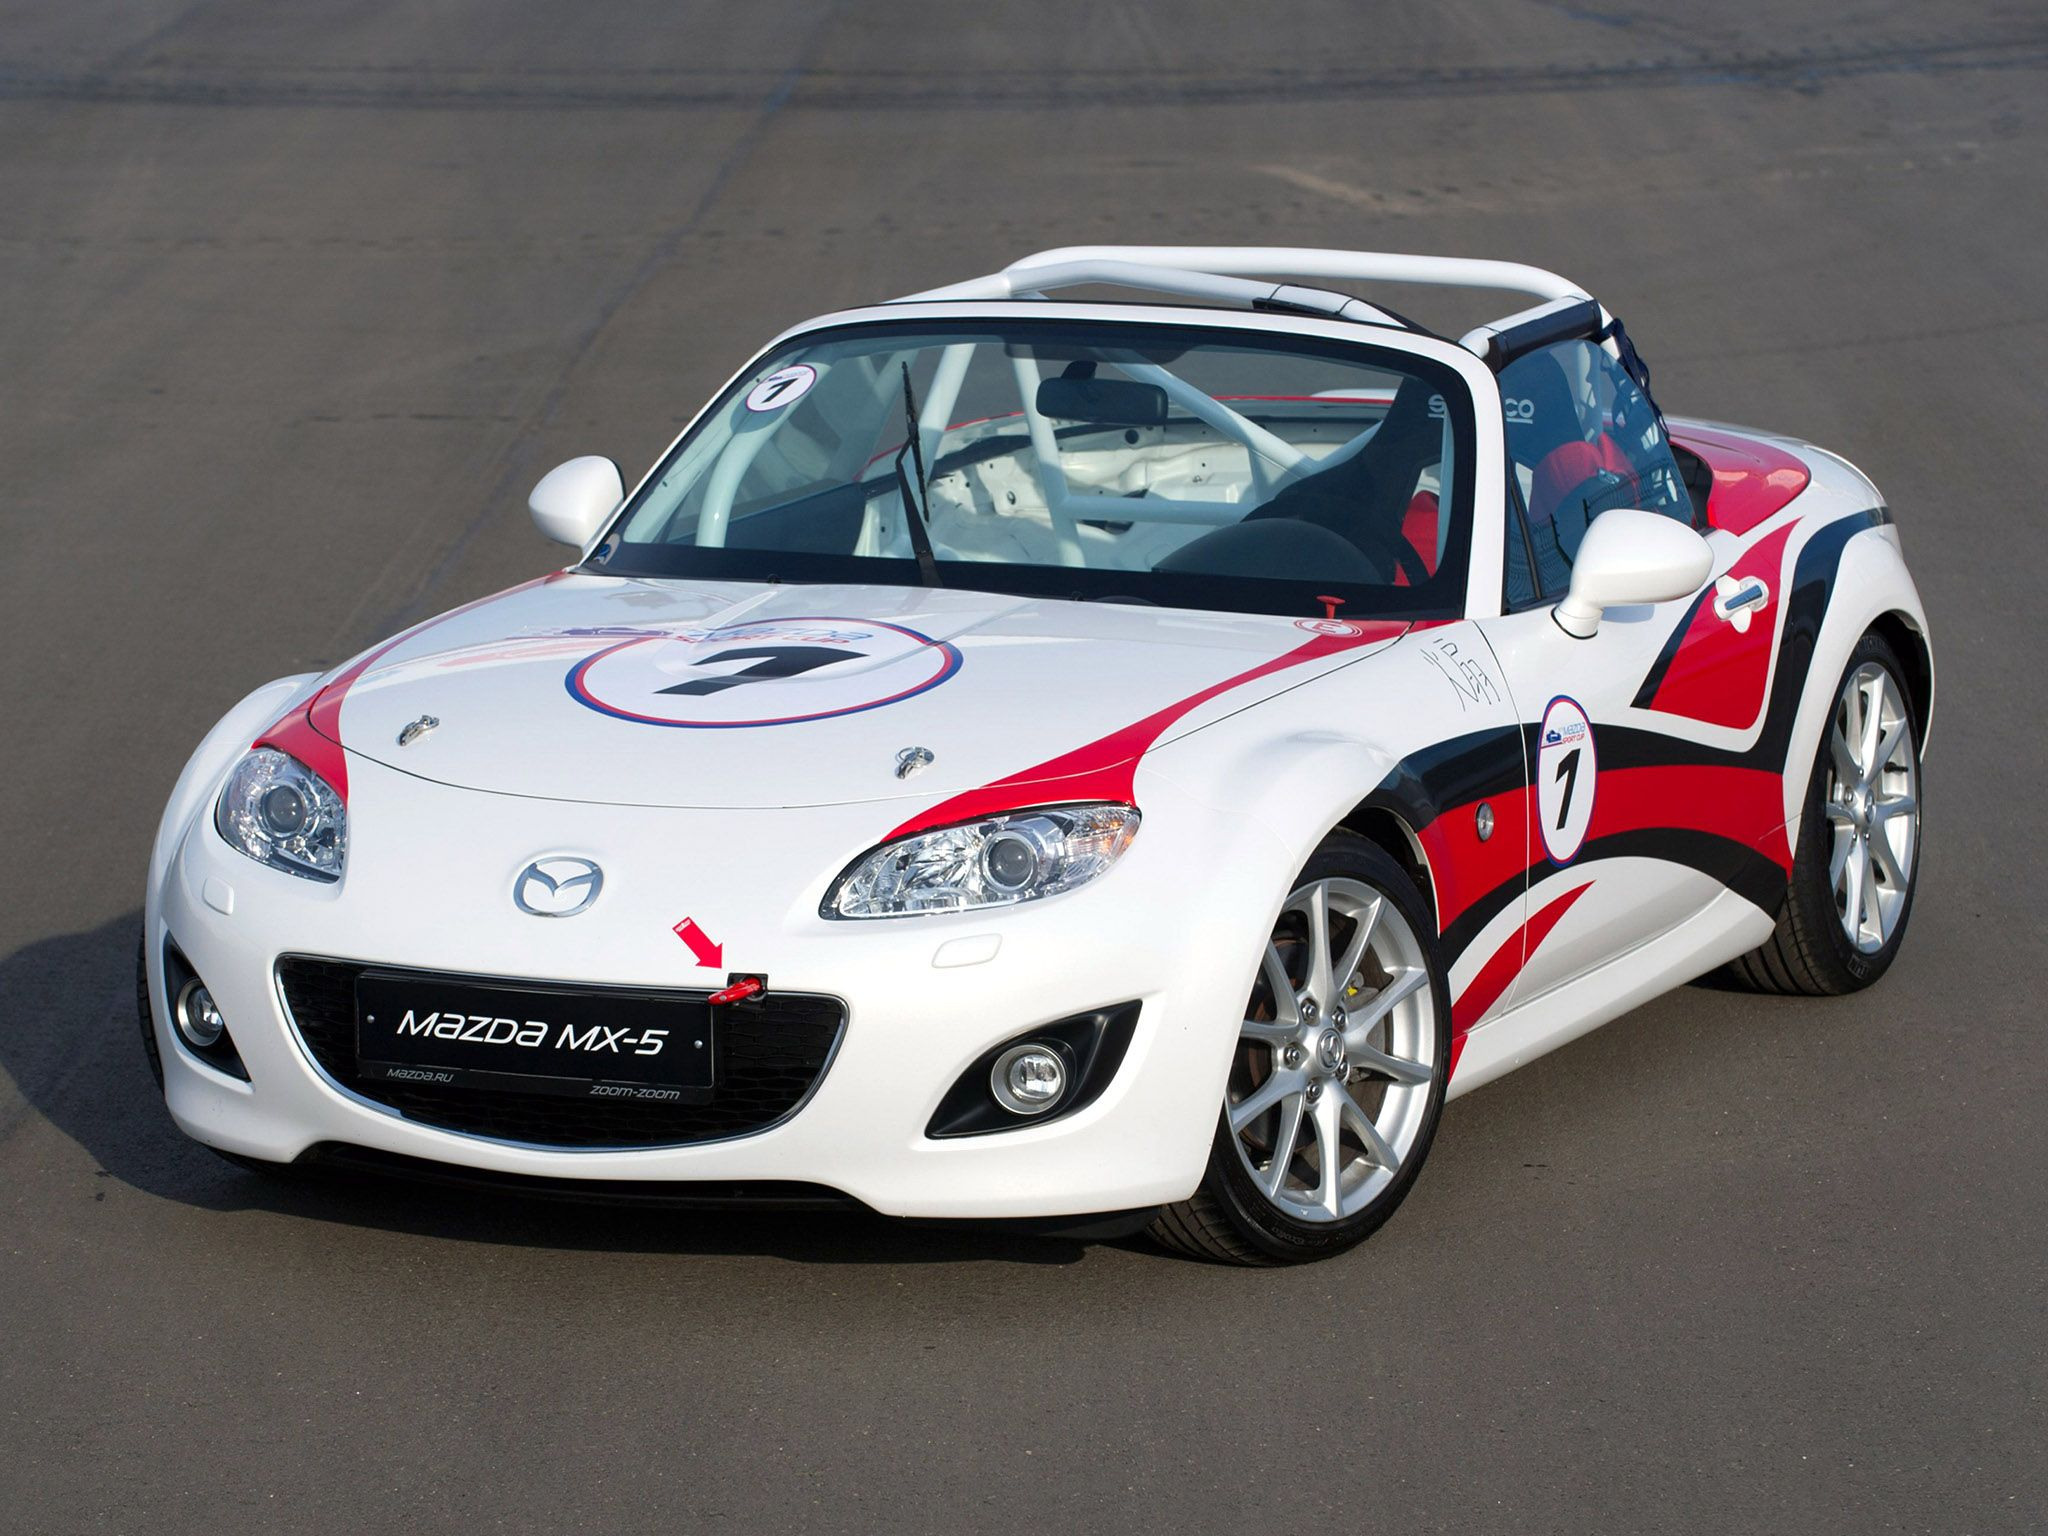 mazda mx 5 nc mazda race car photos pinterest mazda. Black Bedroom Furniture Sets. Home Design Ideas